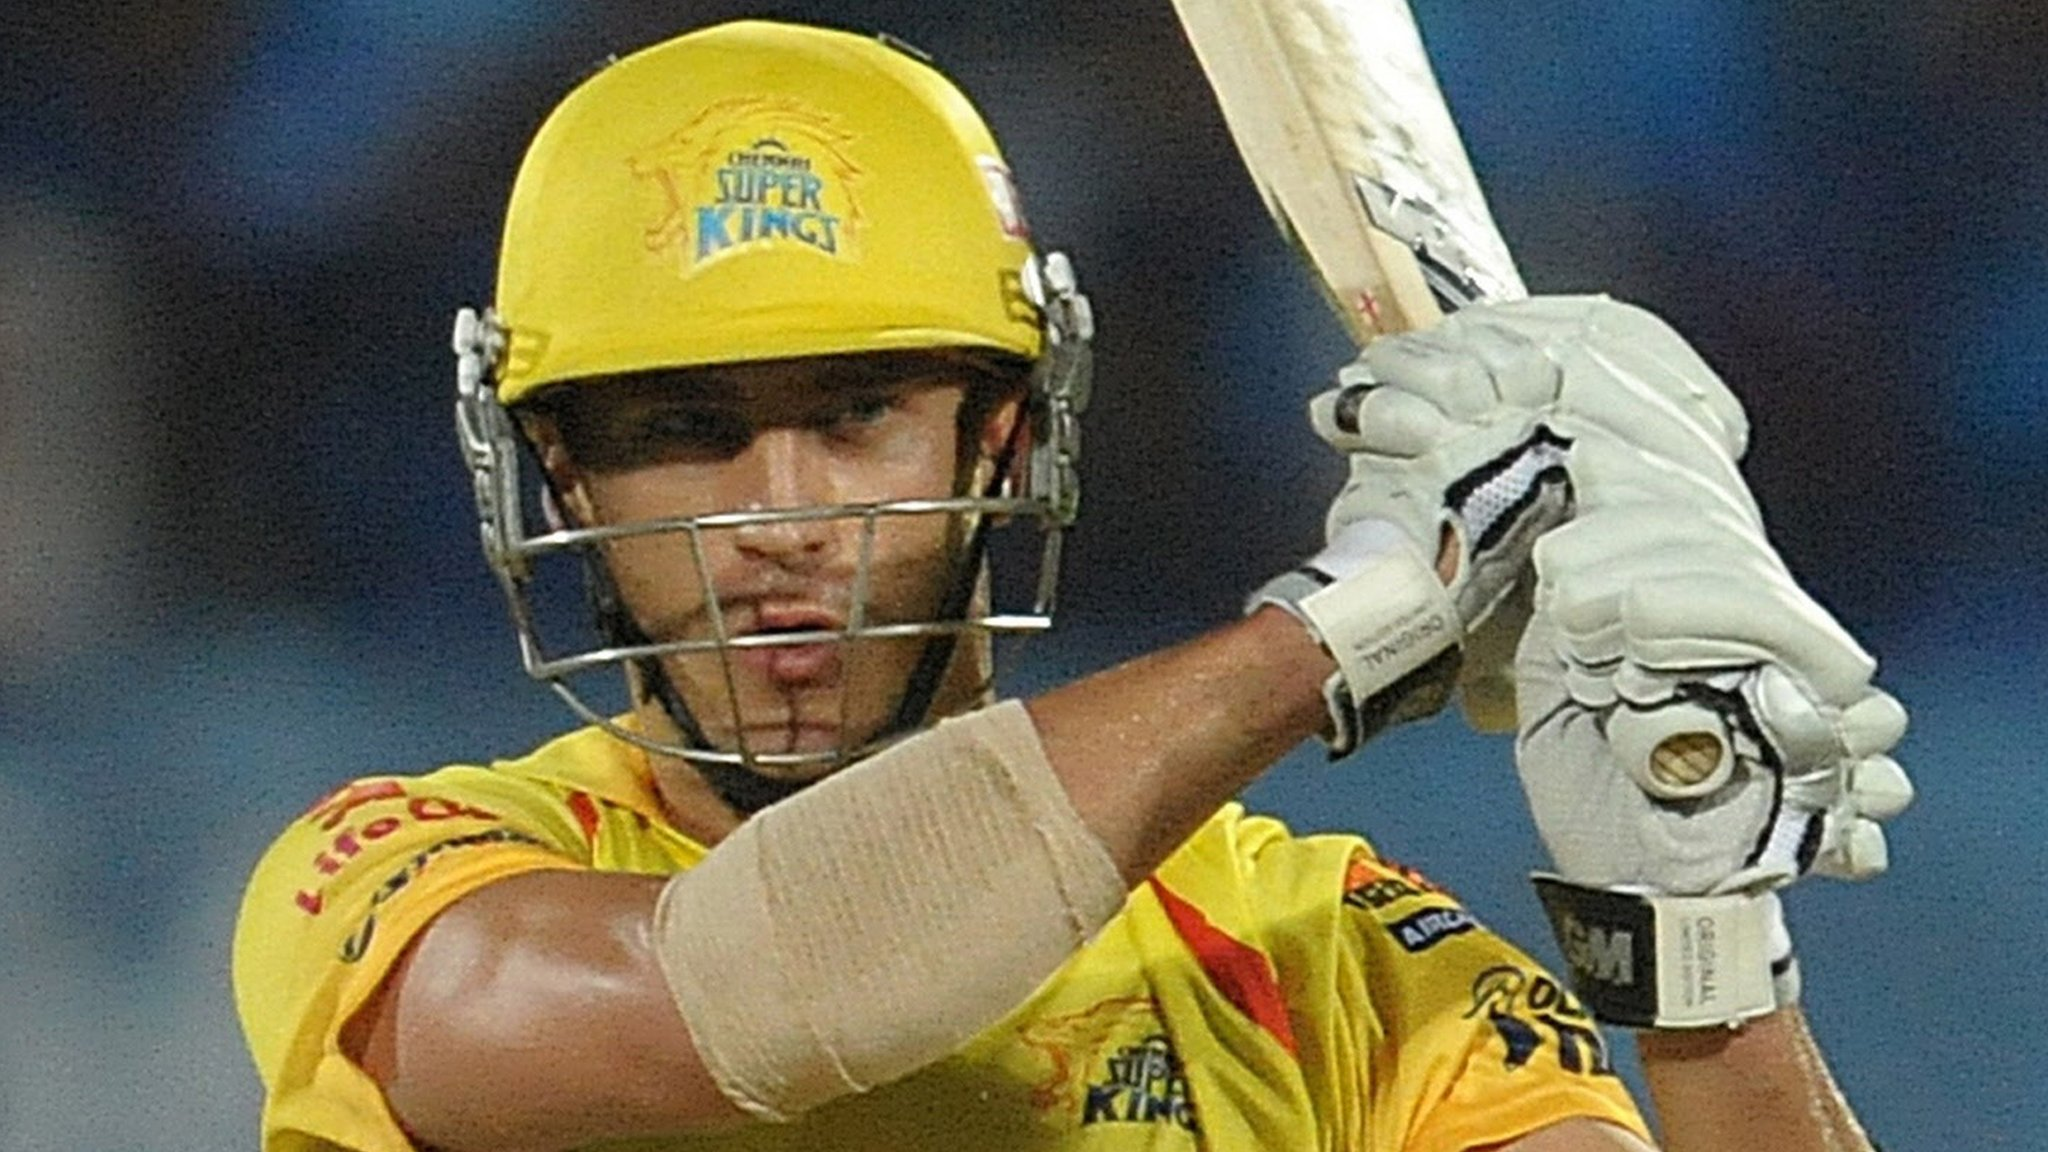 Indian Premier League: Chennai Super Kings beat Sunrisers Hyderabad to reach IPL final